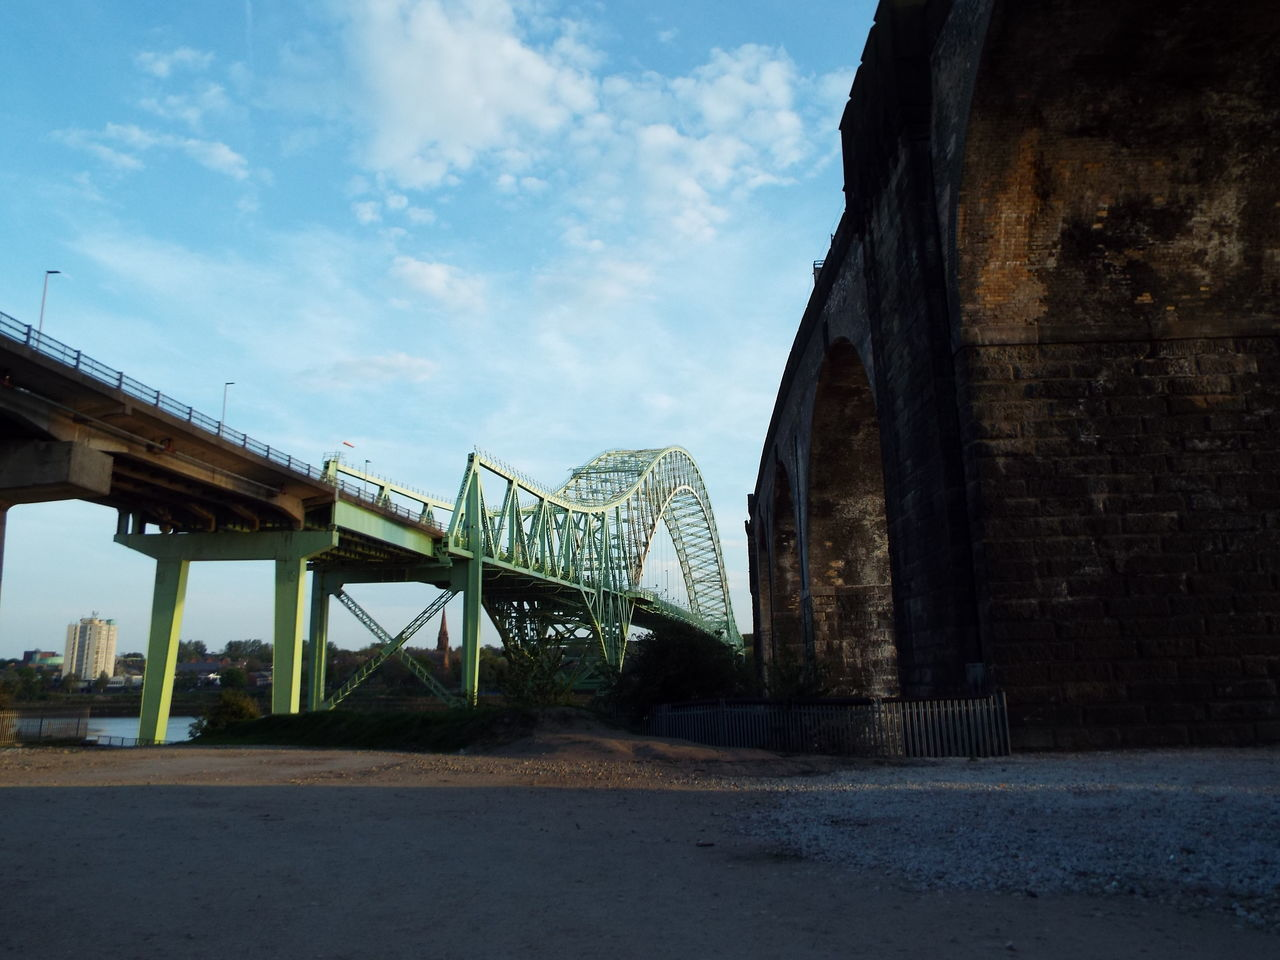 The Silver Jubilee Bridge (or otherwise known as Runcorn Bridge) on the left which allows cars etc to travel between Widnes and Runcorn. The bridge on the right is the Runcorn Railway Bridge (also known as Ethelfleda Bridge and Britannia Bridge) Runcorn Bridge Bridge River Mersey River Water Riverbank Viaduct Runcorn Railway Bridge Ethelfleda Bridge Britannia Bridge Widnes Runcorn The Architect - 2016 EyeEm Awards